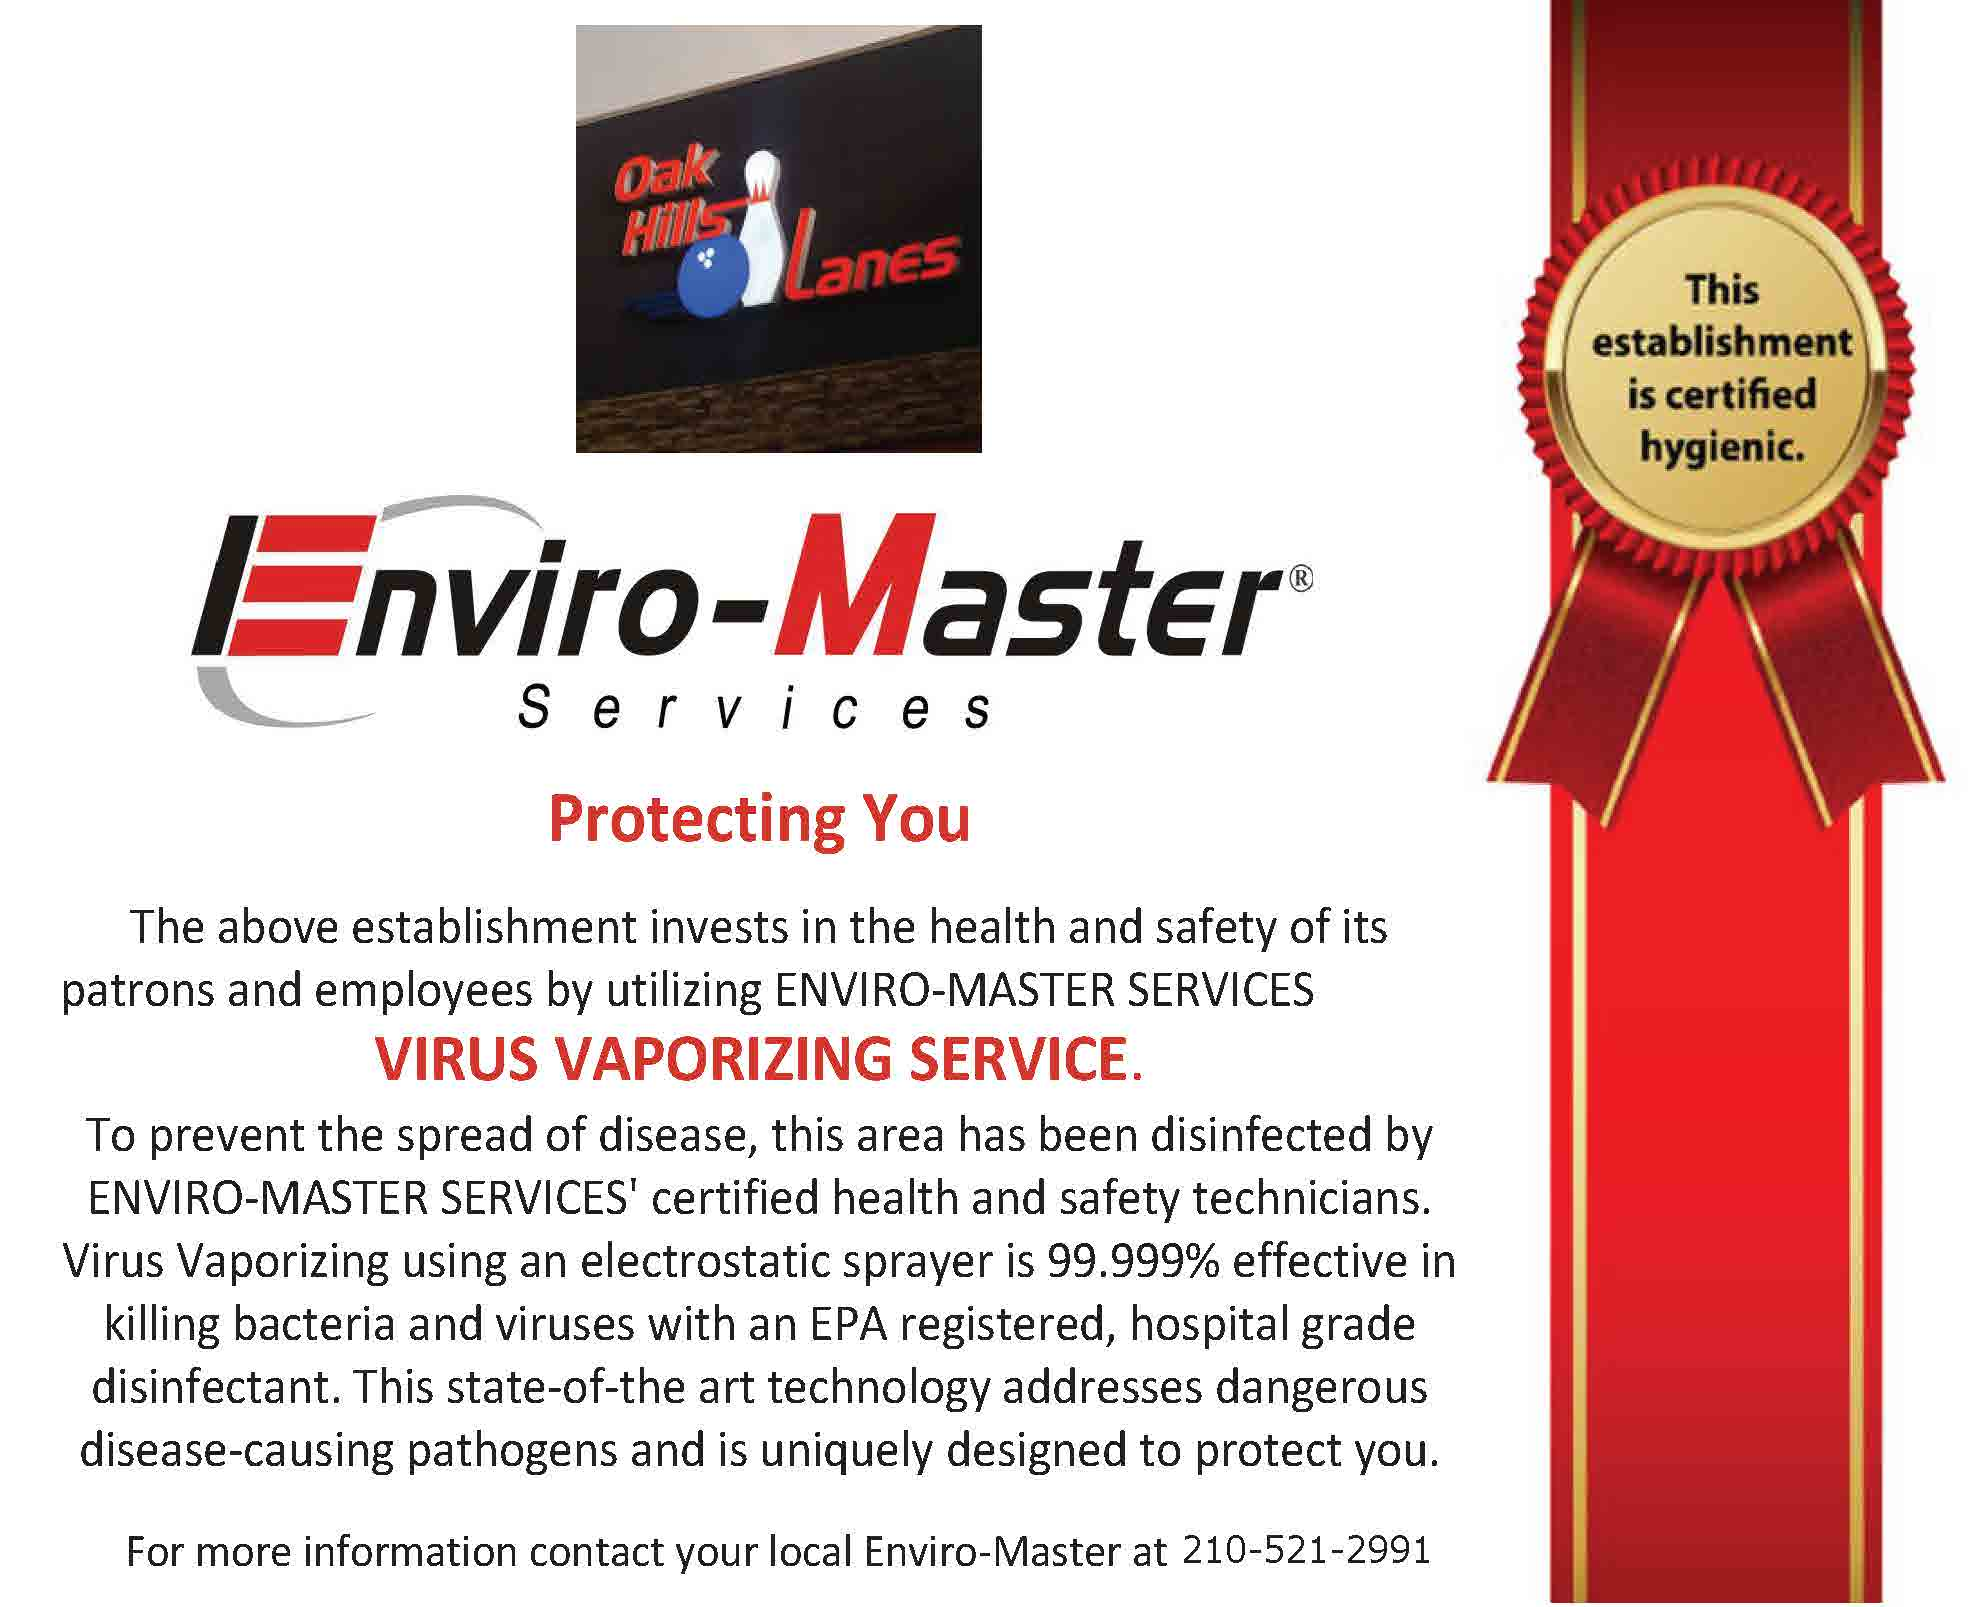 Certification of Virus Vaporizing Service_UPS